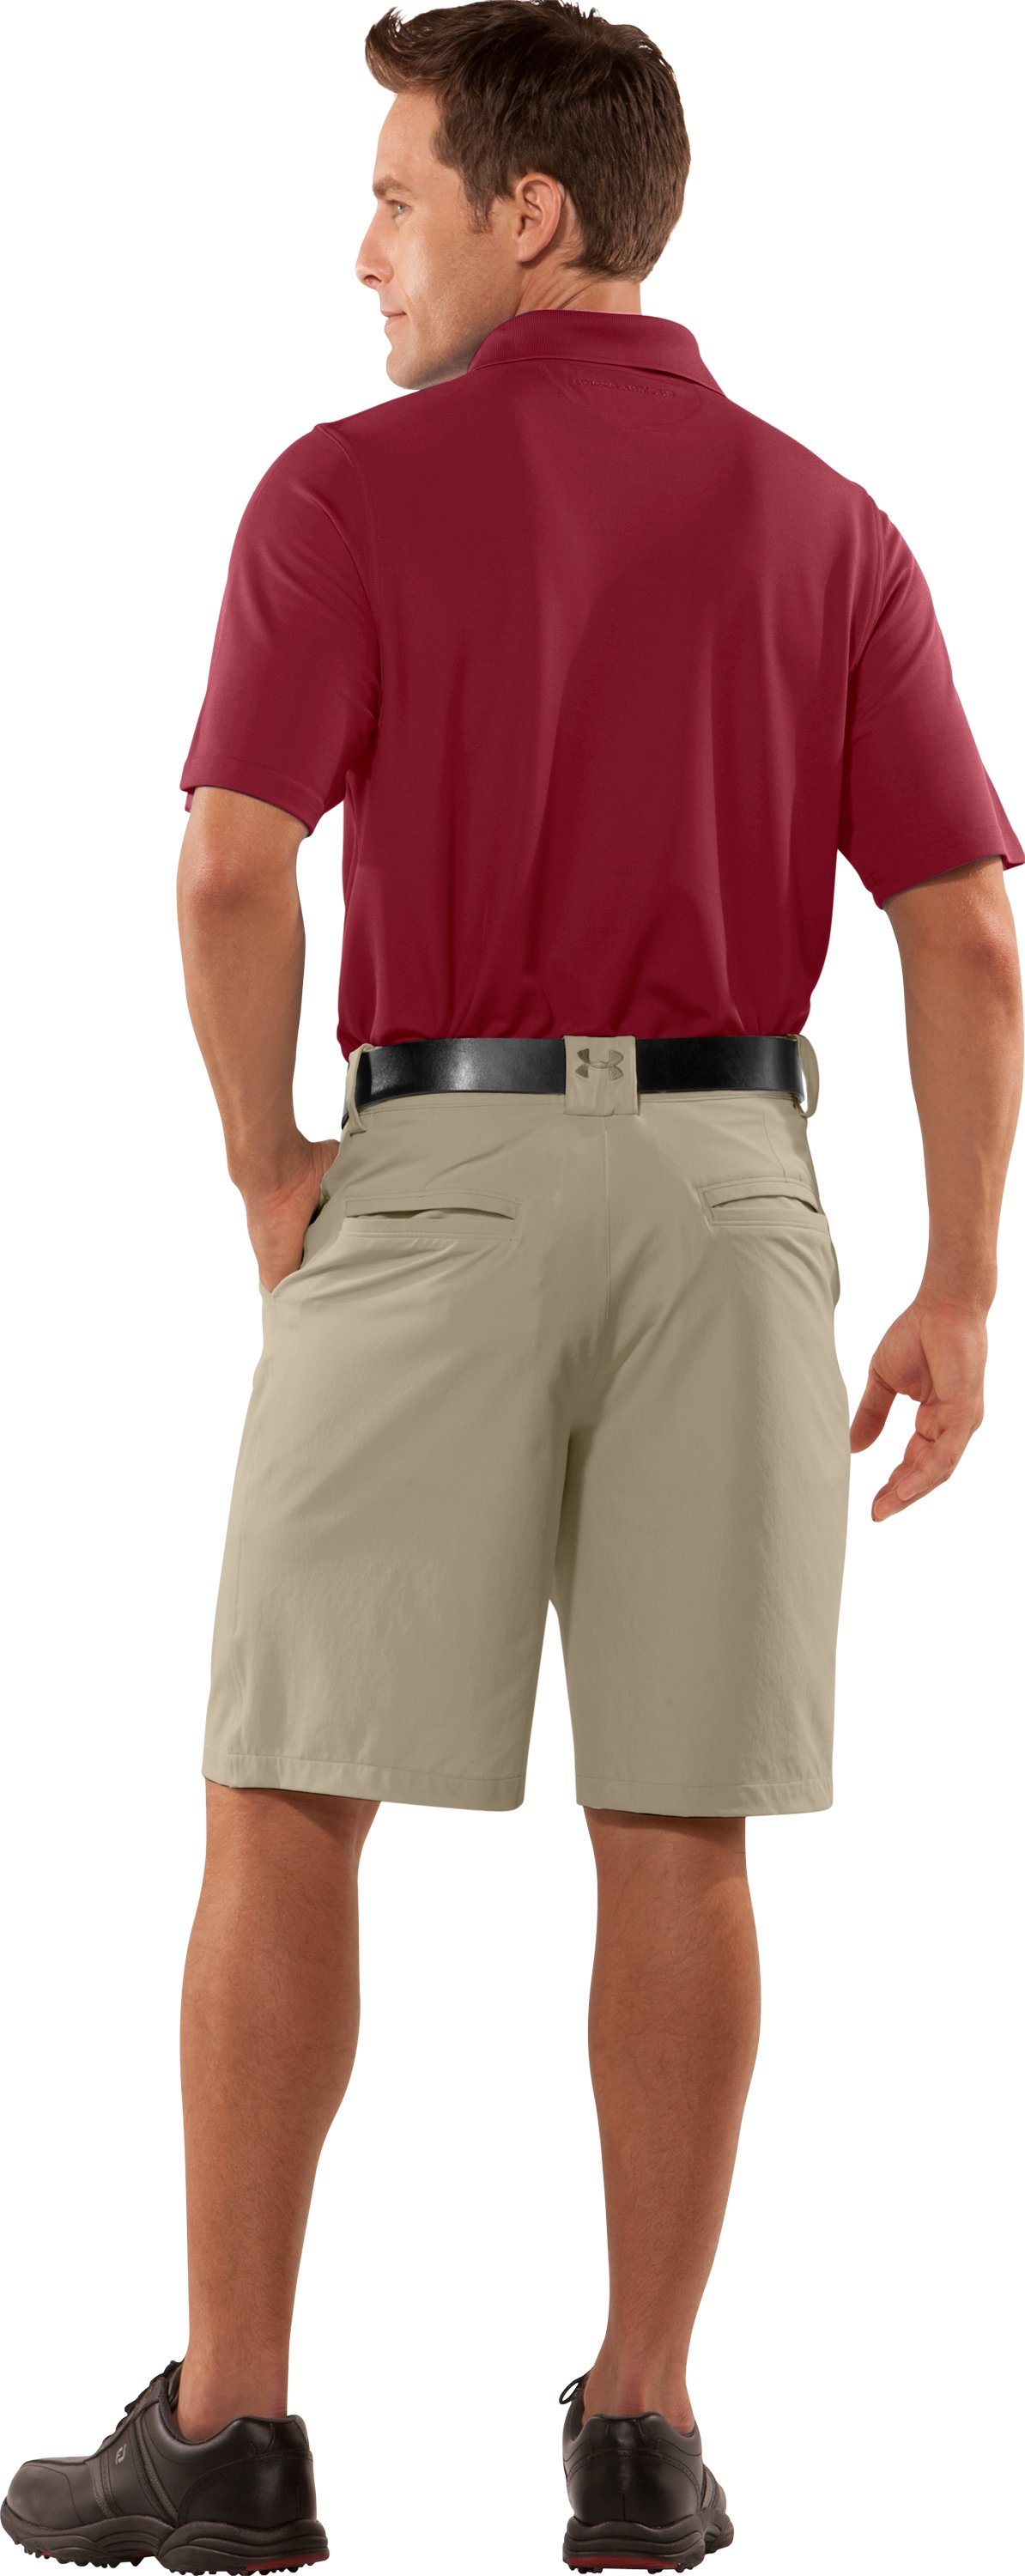 Men's Bent Grass Shorts, Canvas, Back